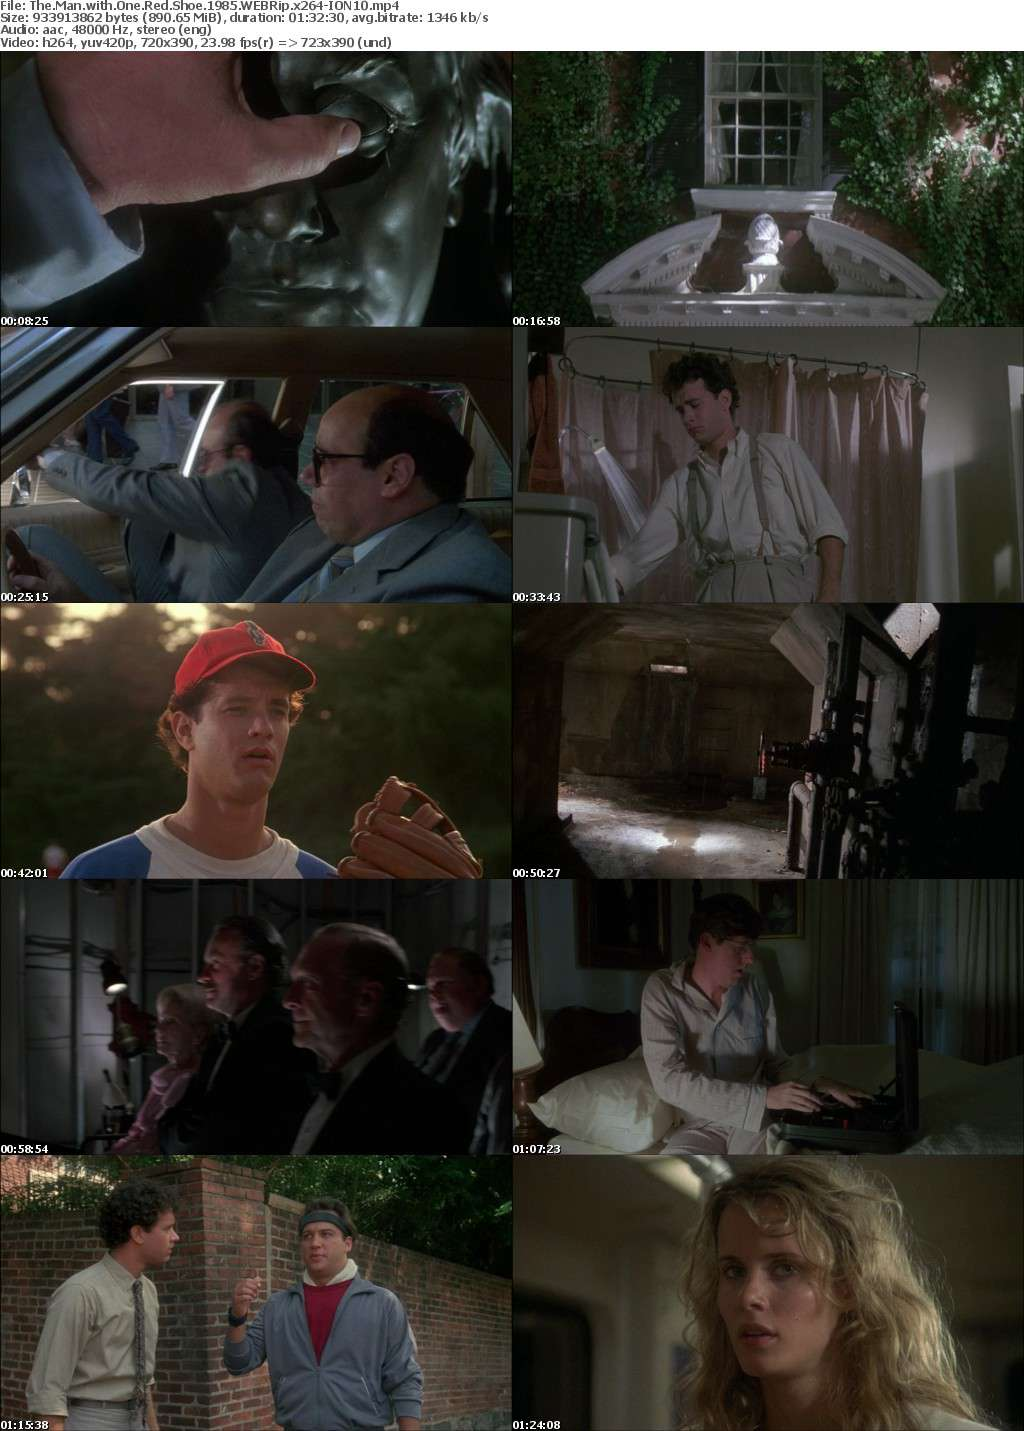 The Man with One Red Shoe 1985 WEBRip x264-ION10